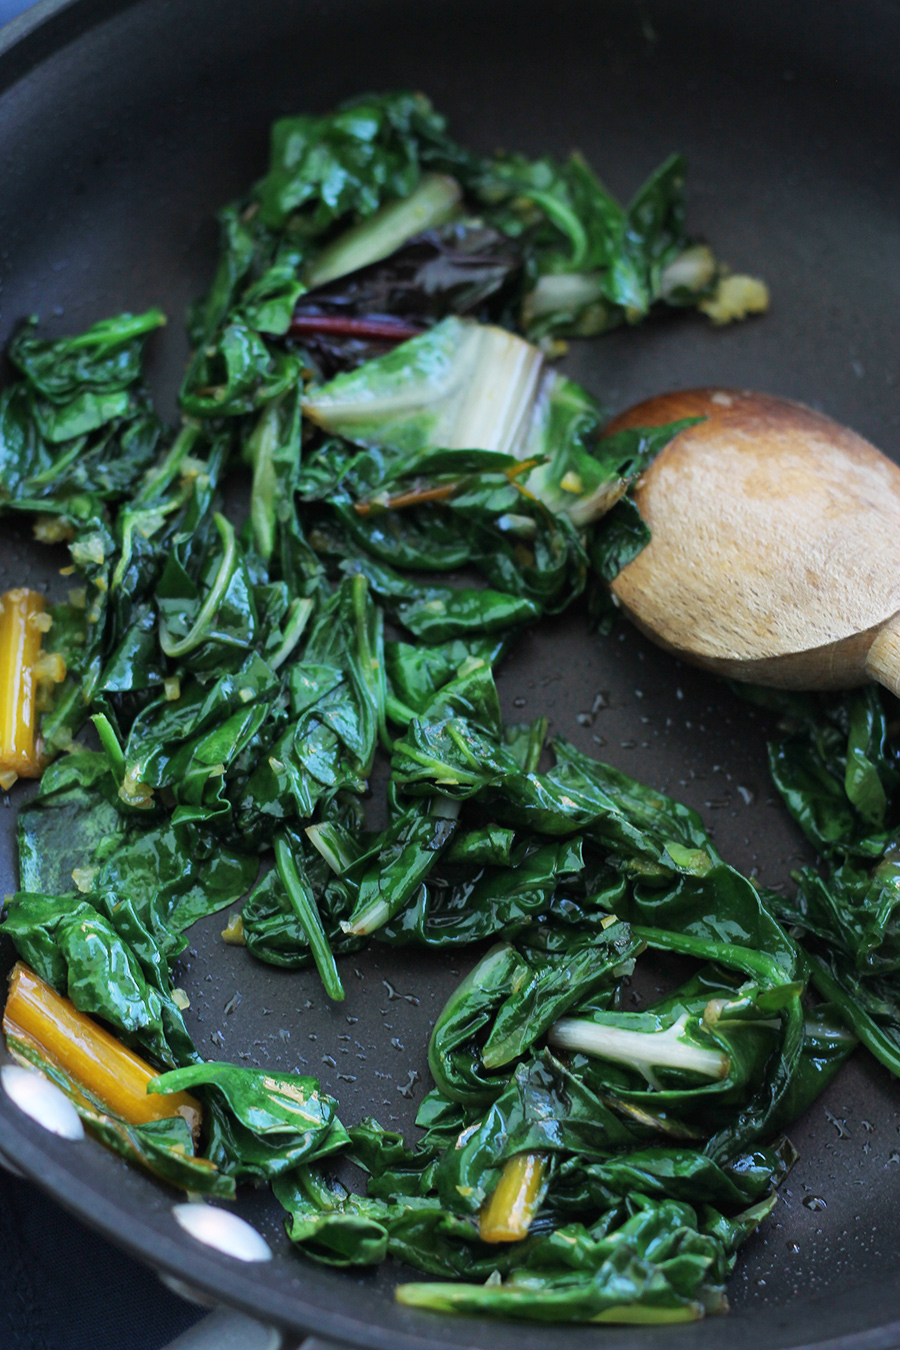 Spinach and chard in saute pan with wooden spoon on the side.